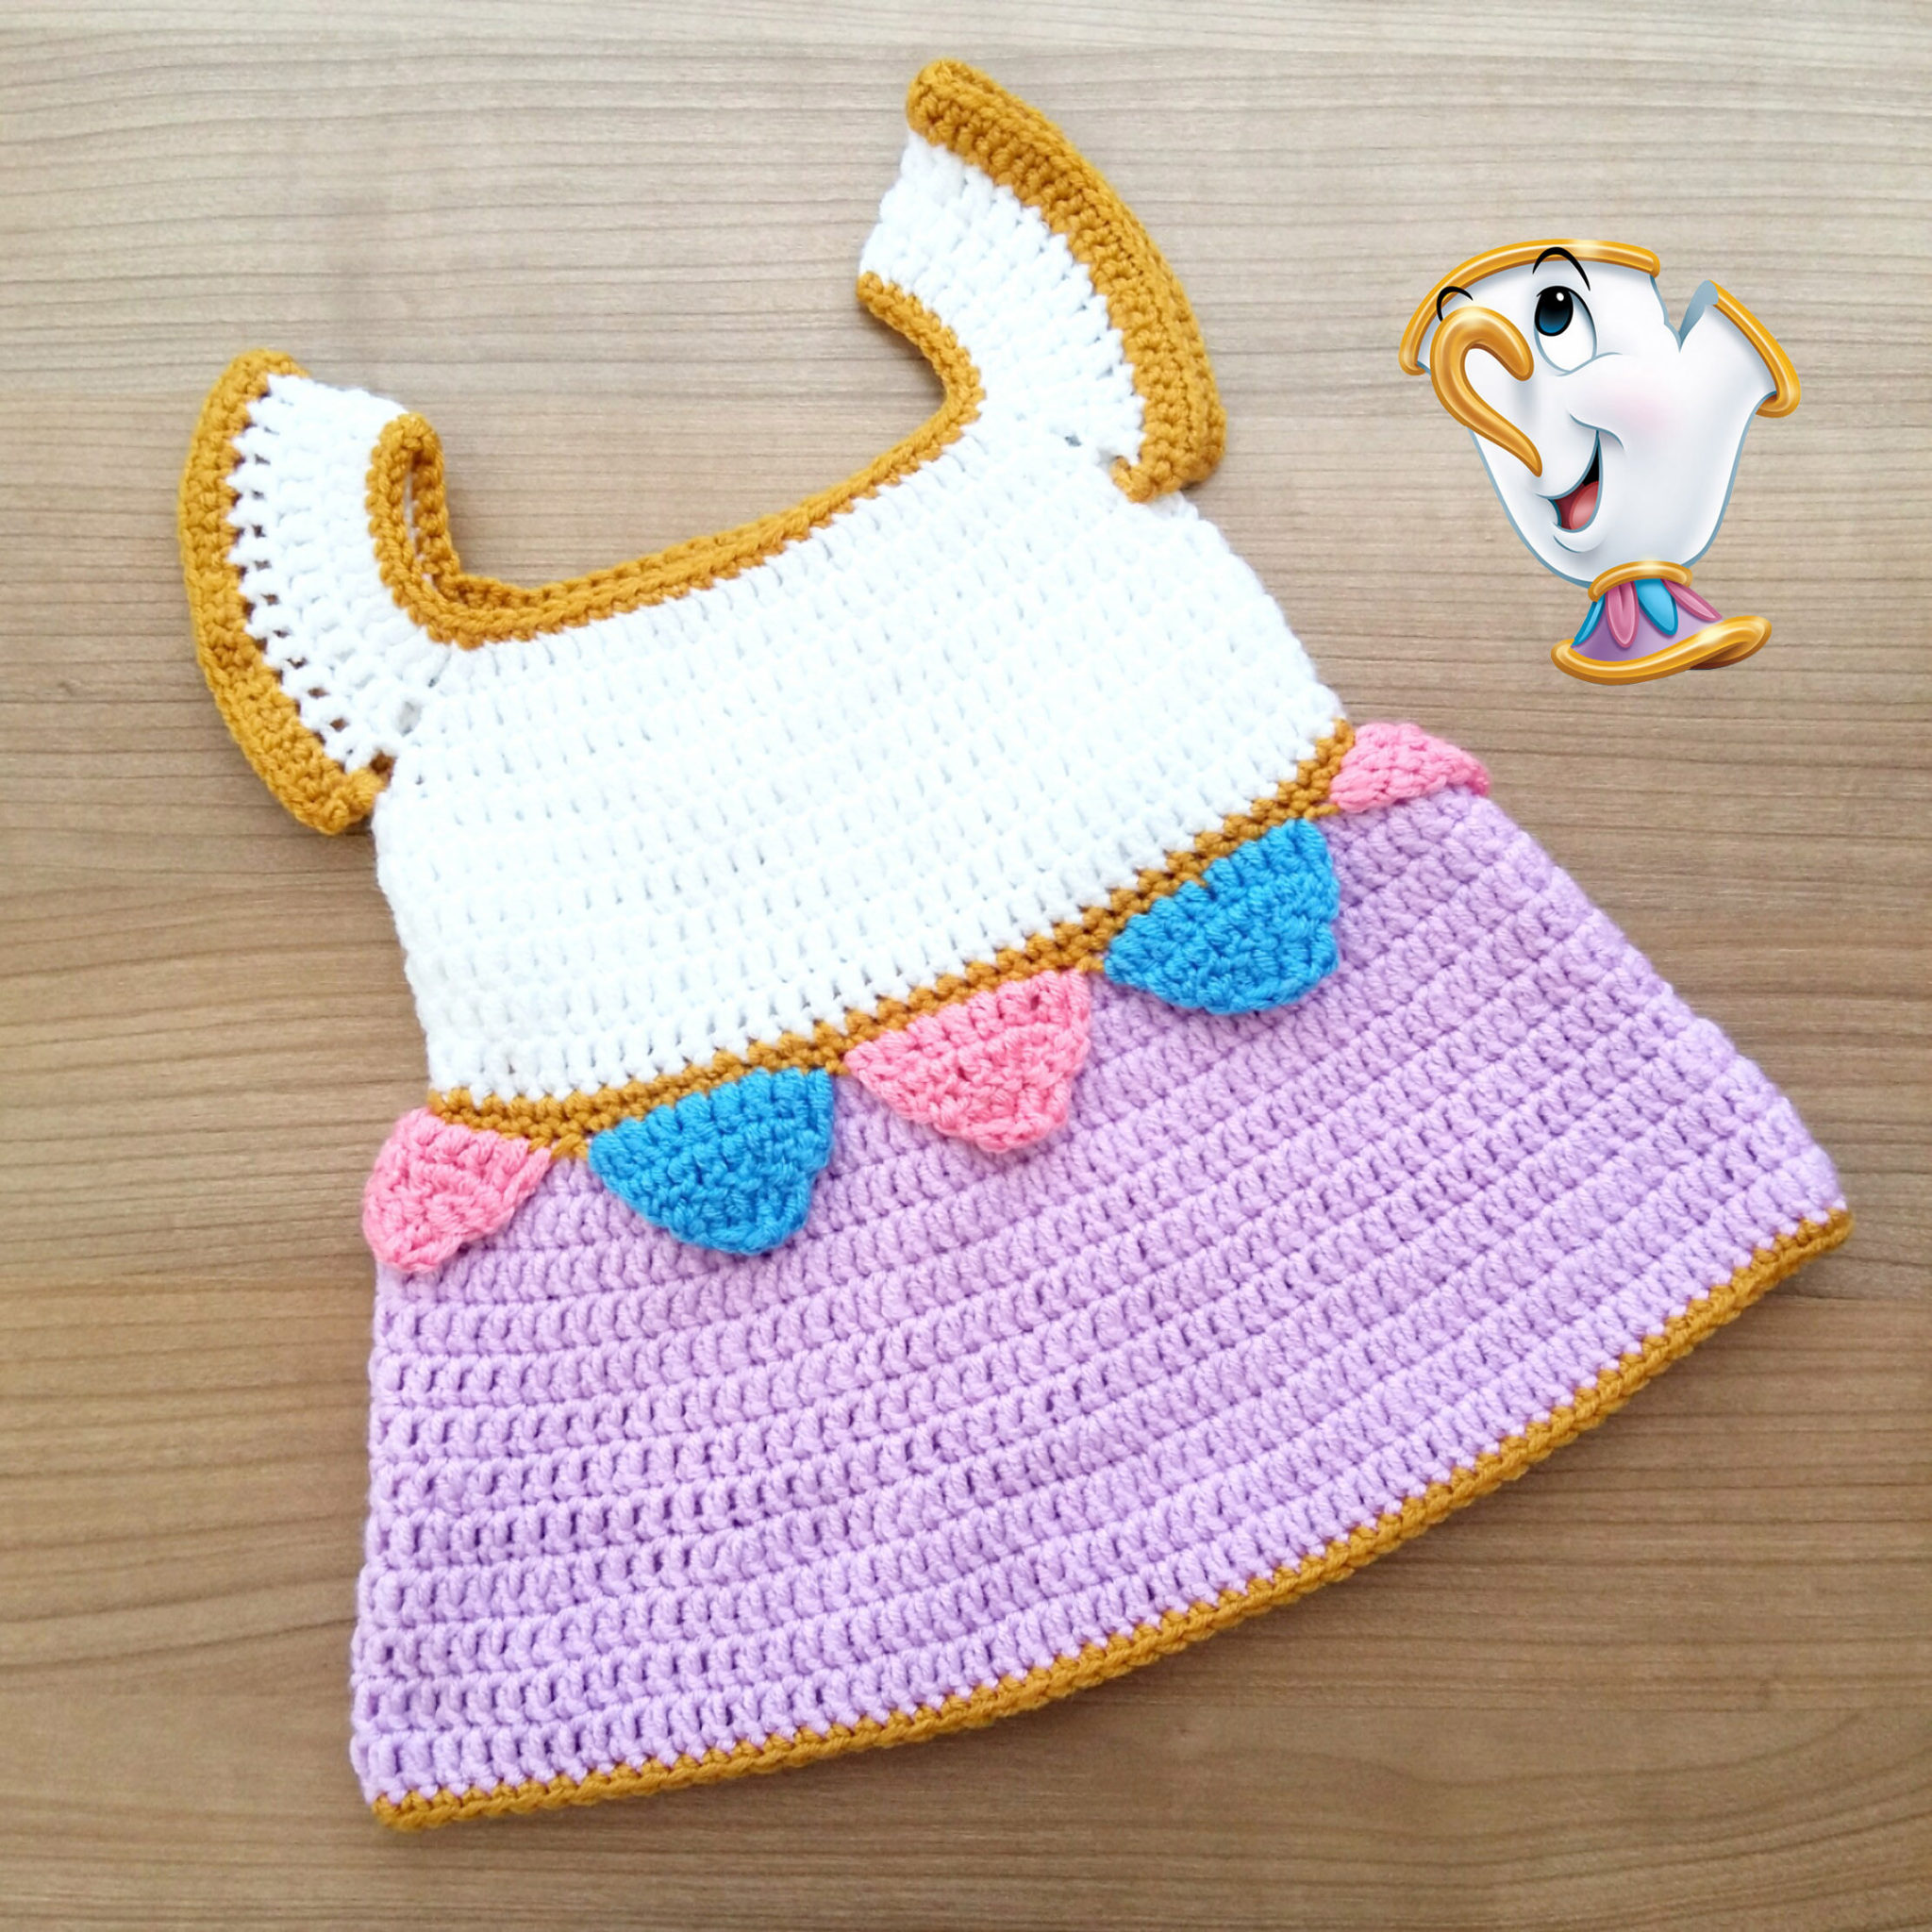 Chip the Teacup Baby Dress | Free Pattern - My Accessory Box